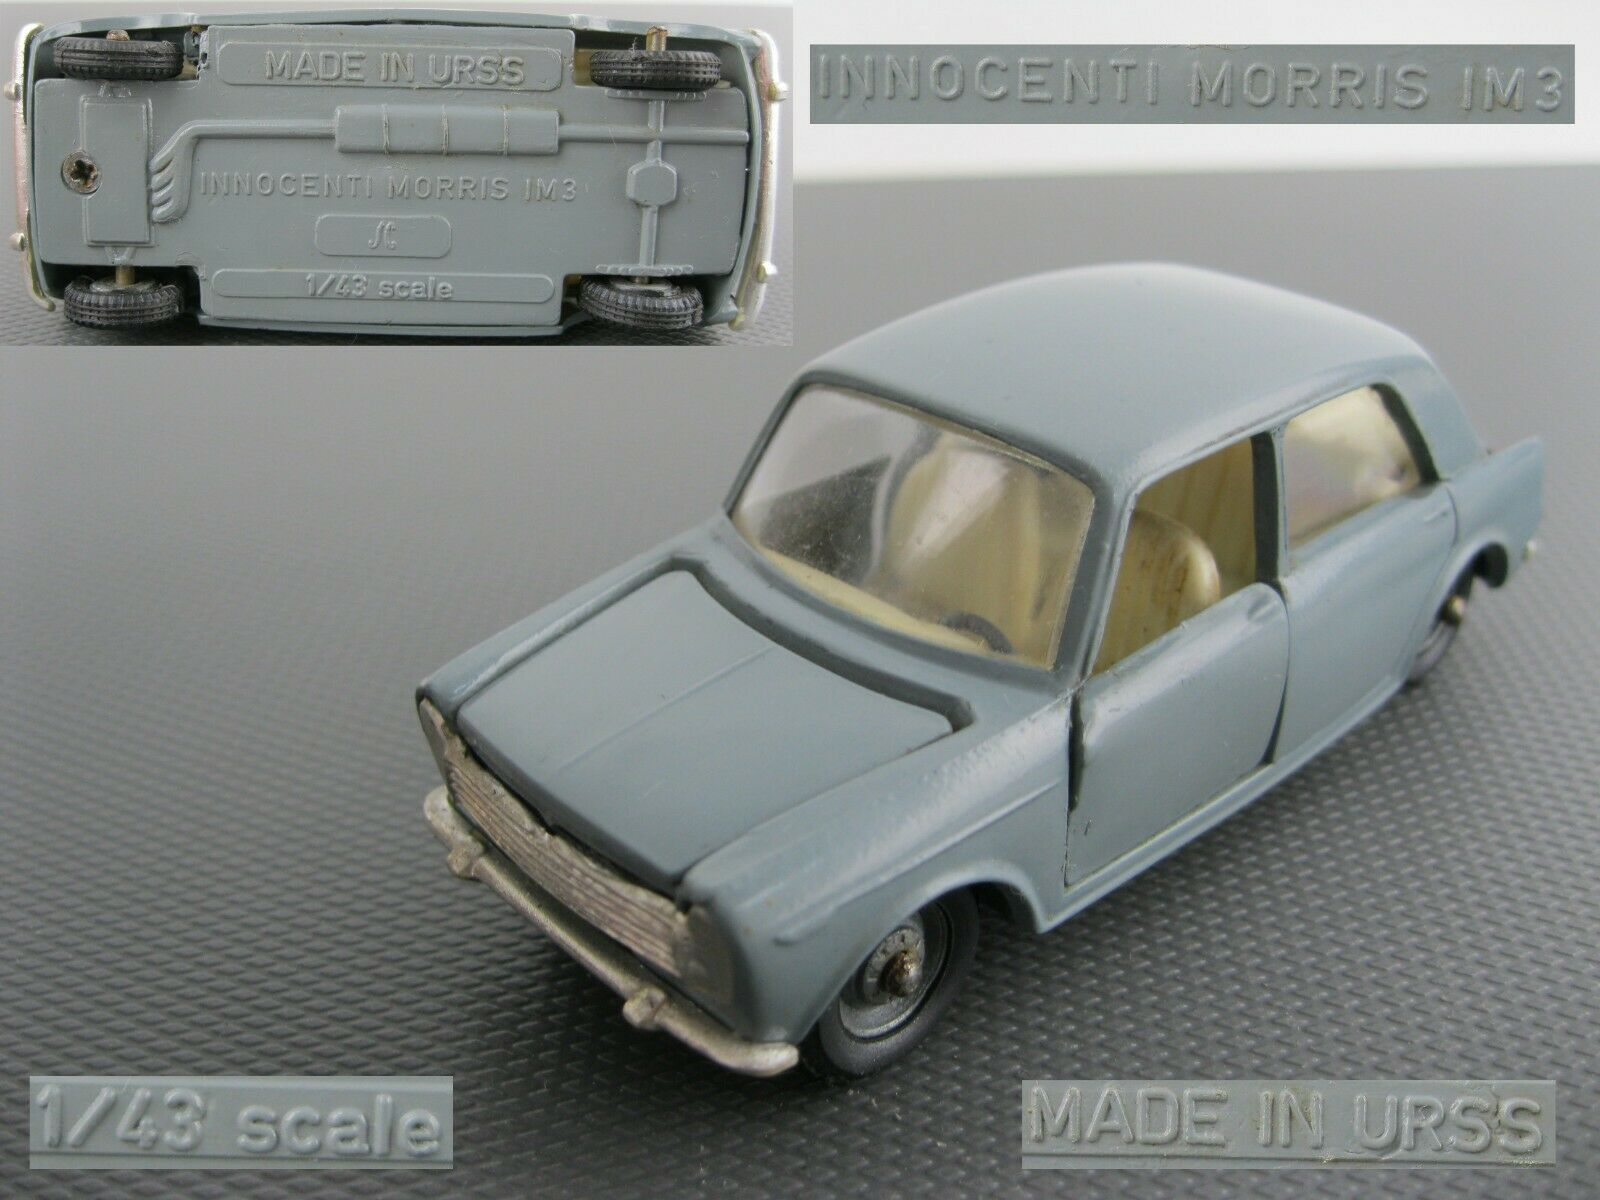 Car INNOCENTI MORRIS IM3 diecast metal model 1 43 Soviet Russian made in USSR